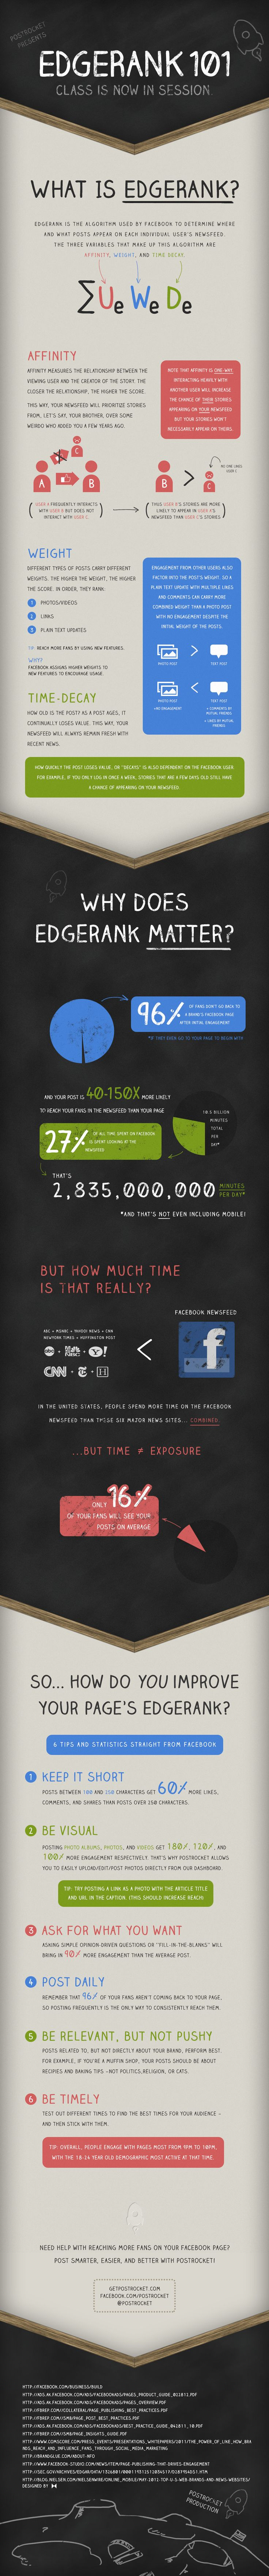 [INFOGRAPHIC] Facebook EdgeRan